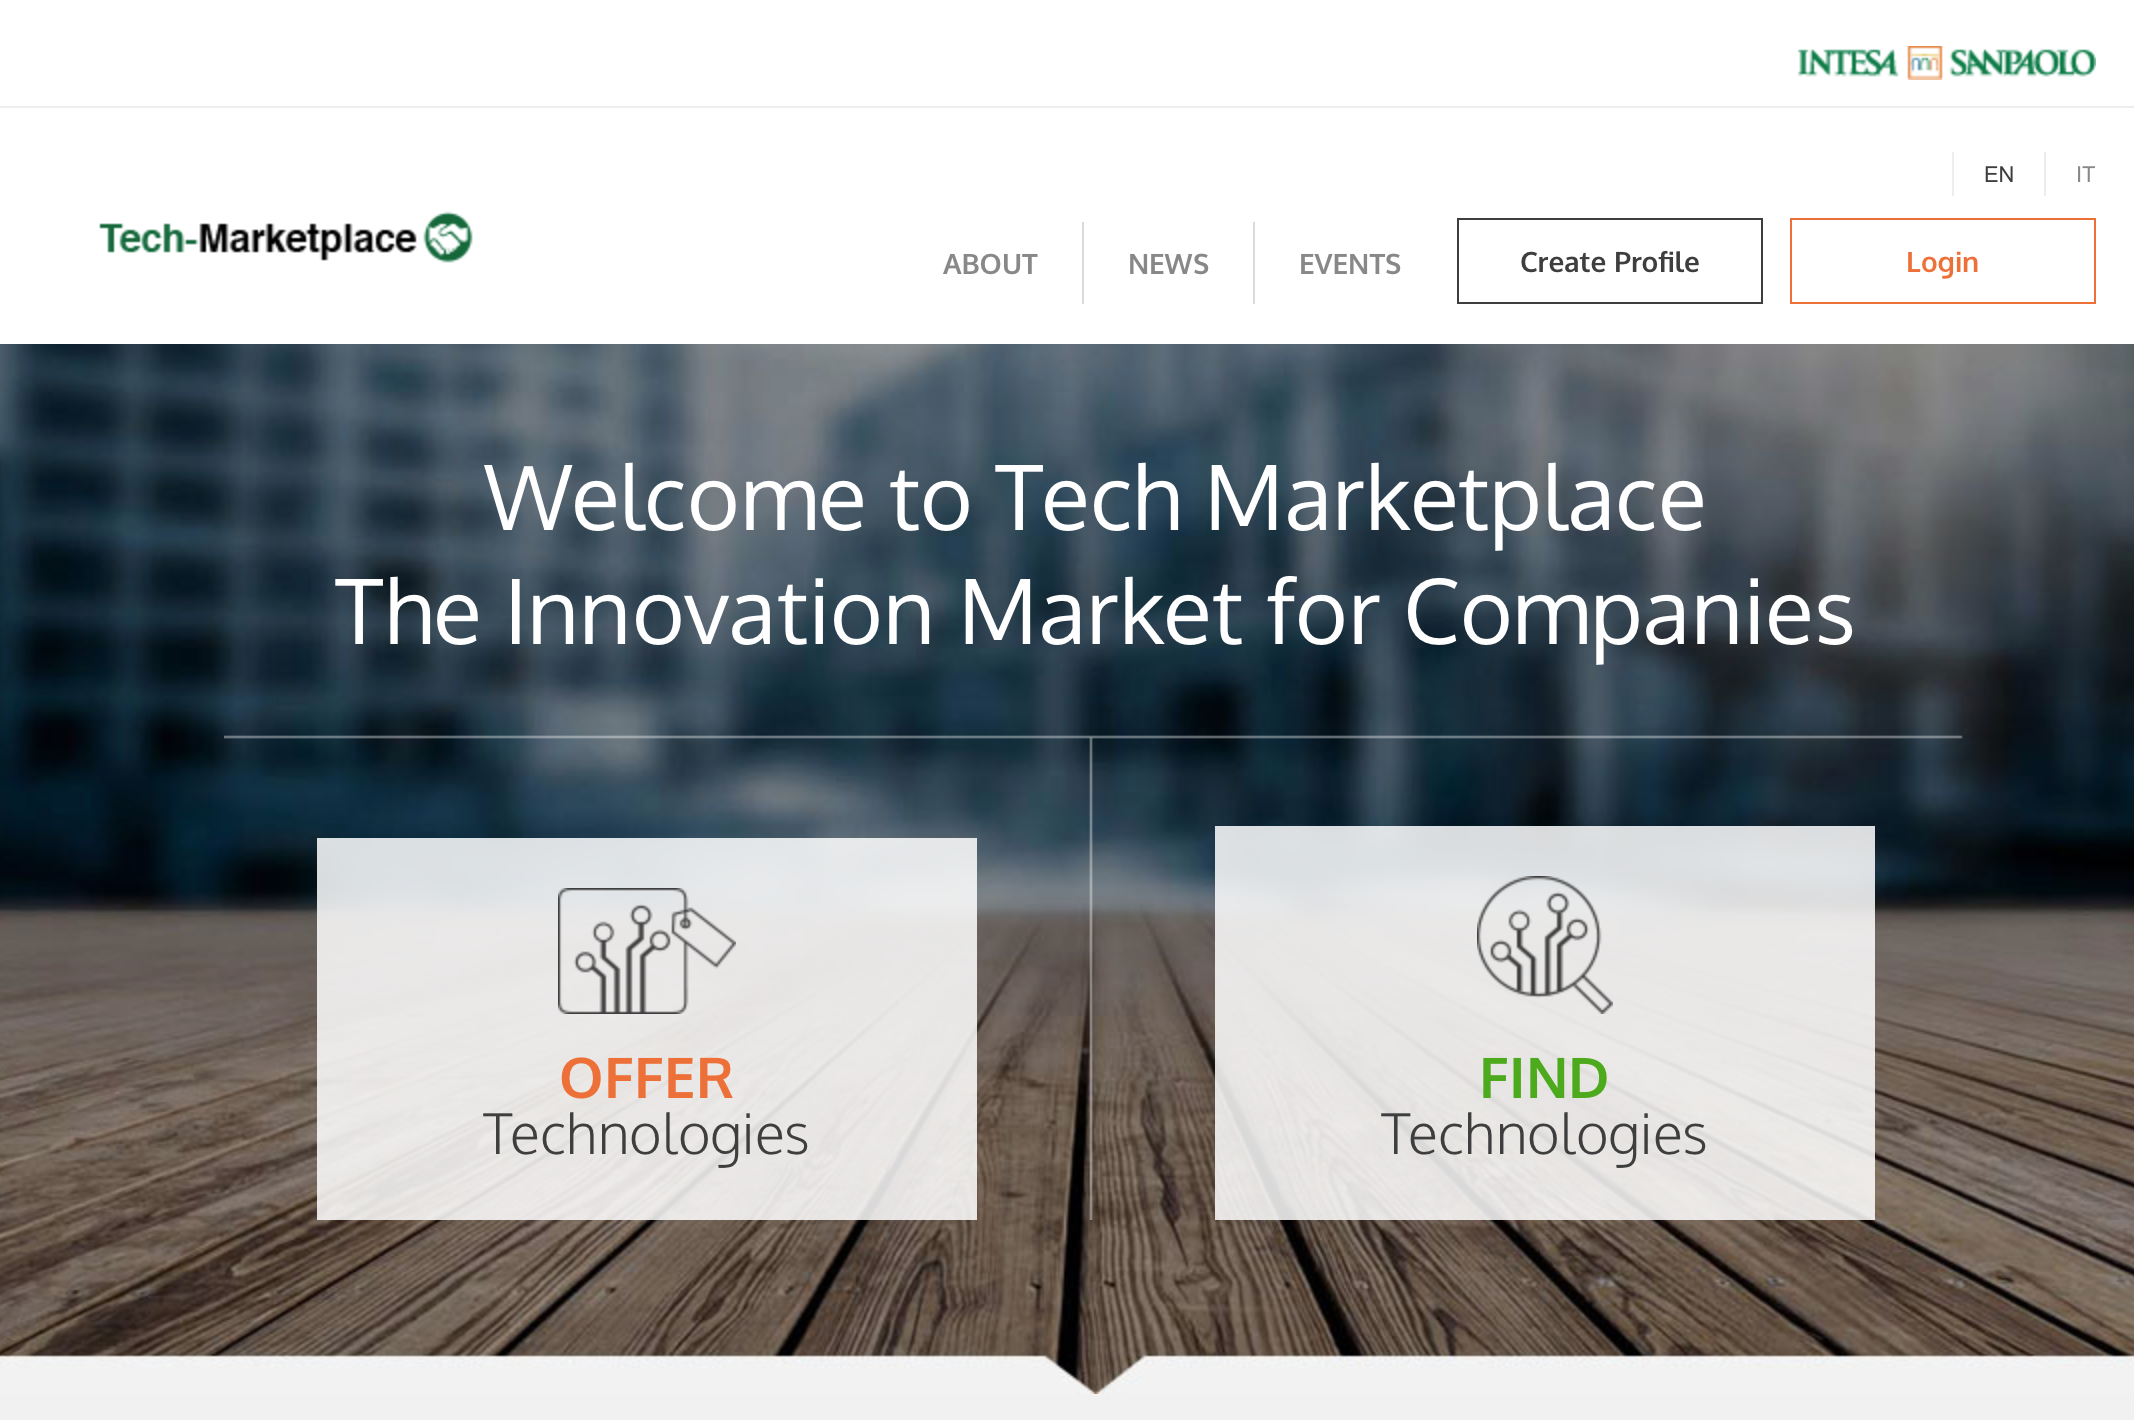 Intesa Sanpaolo Tech-Marketplace